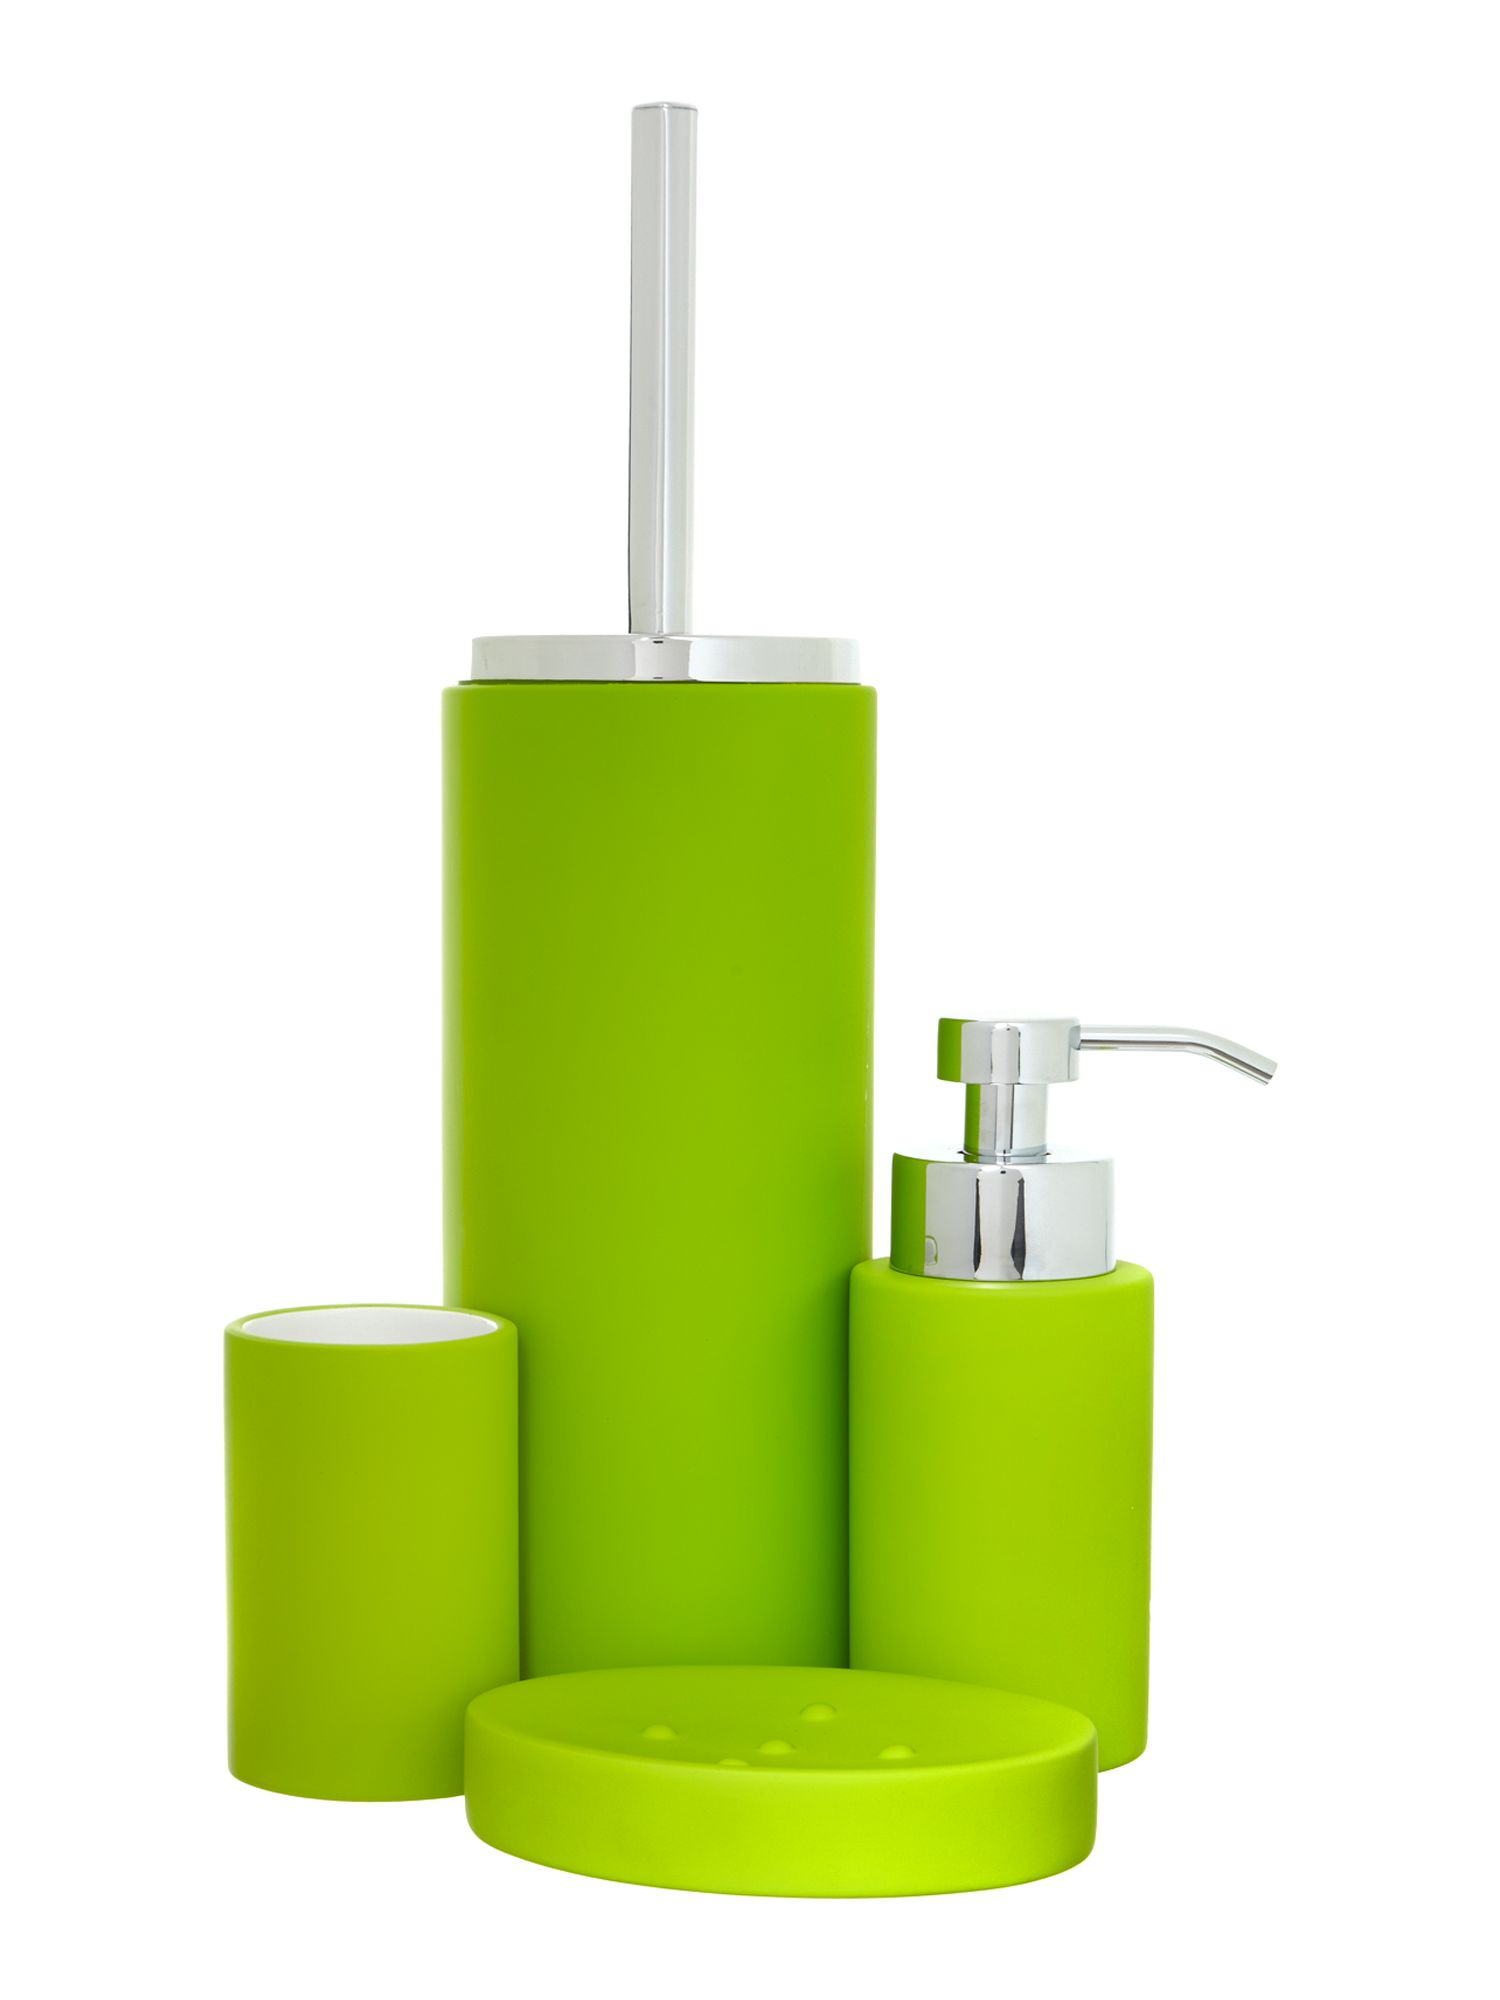 Soft touch bath accessories in lime